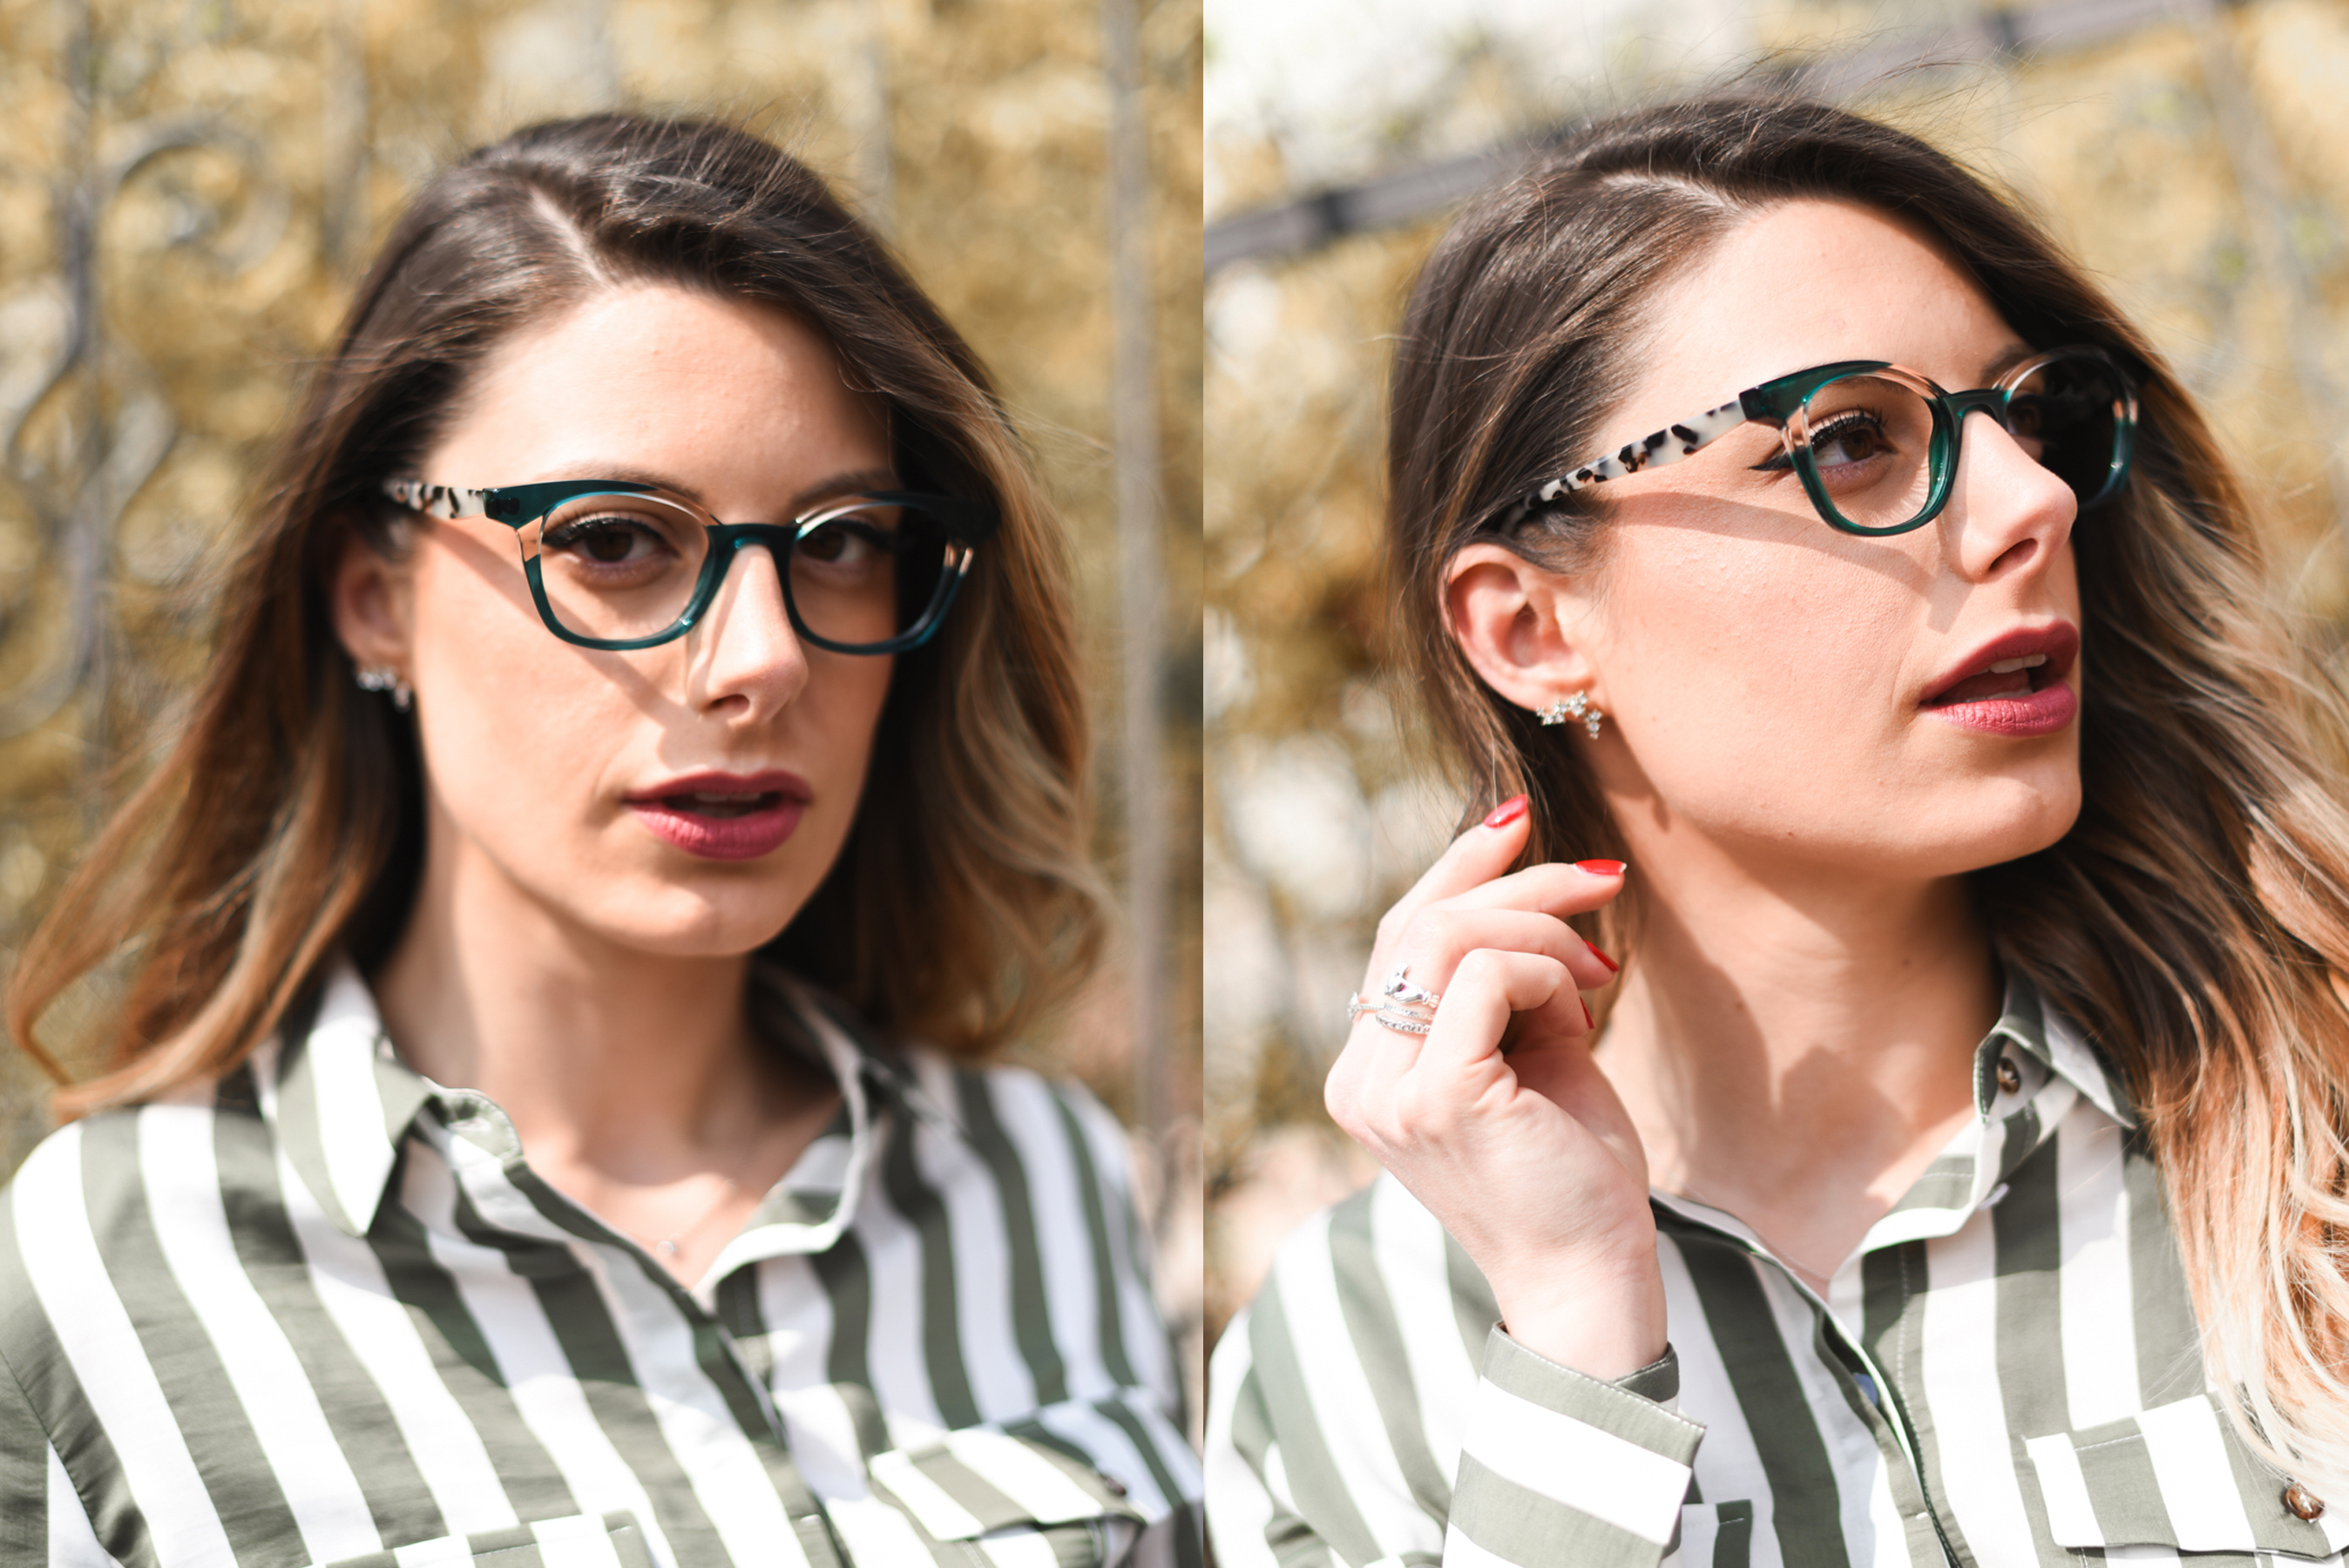 Giulia de martin face a face eyeglasses lunettes 2018 french eyewear BLAST 1-2 blog eyewear behind my glasses influncer blog slider